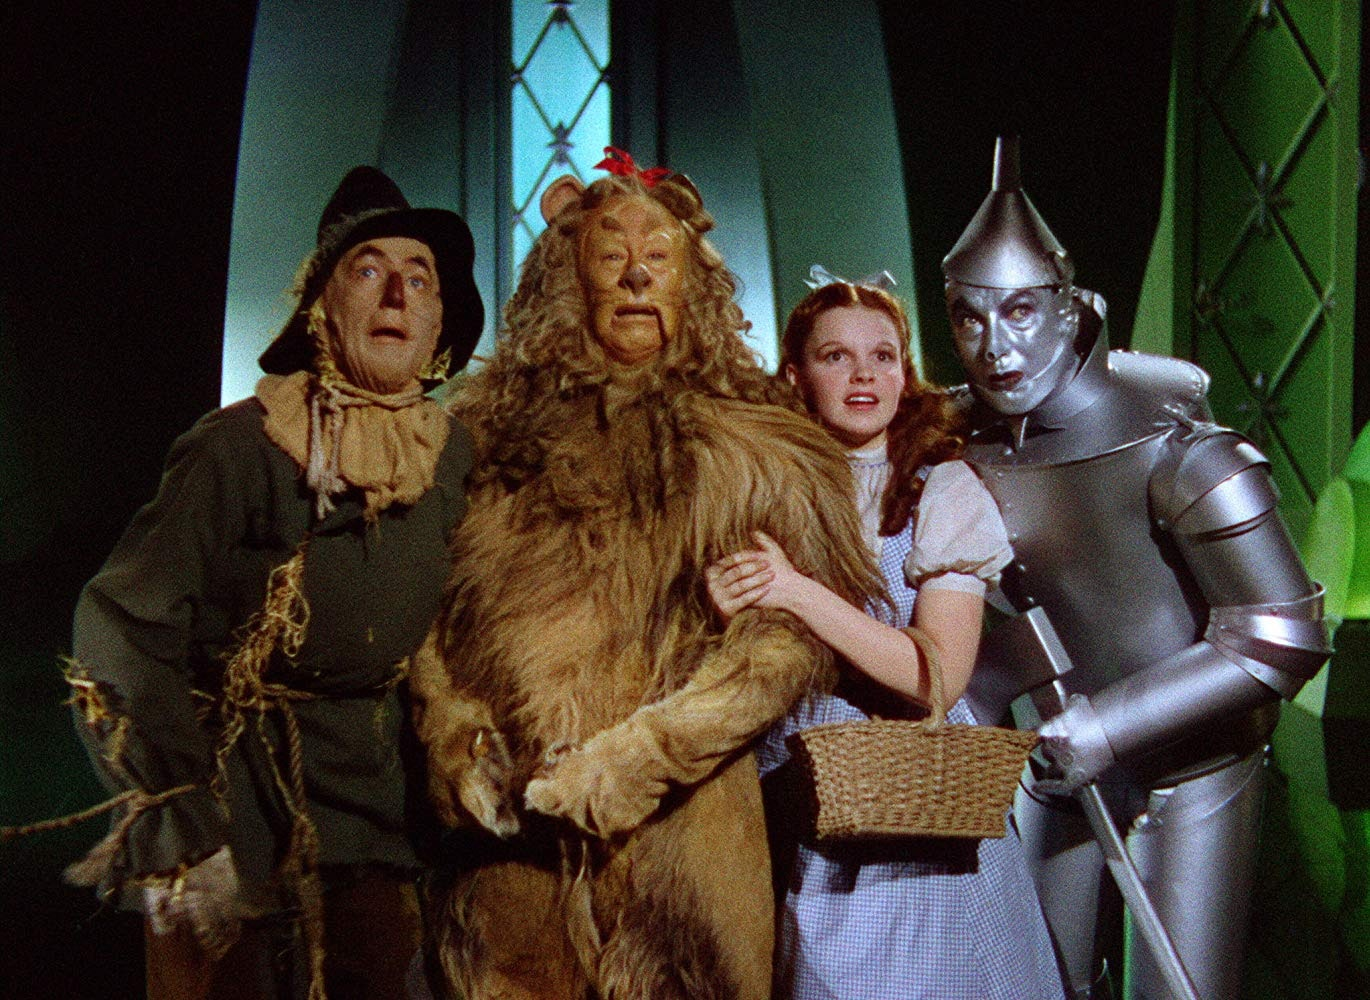 Wizard of Oz: why this extraordinary movie has been so influential